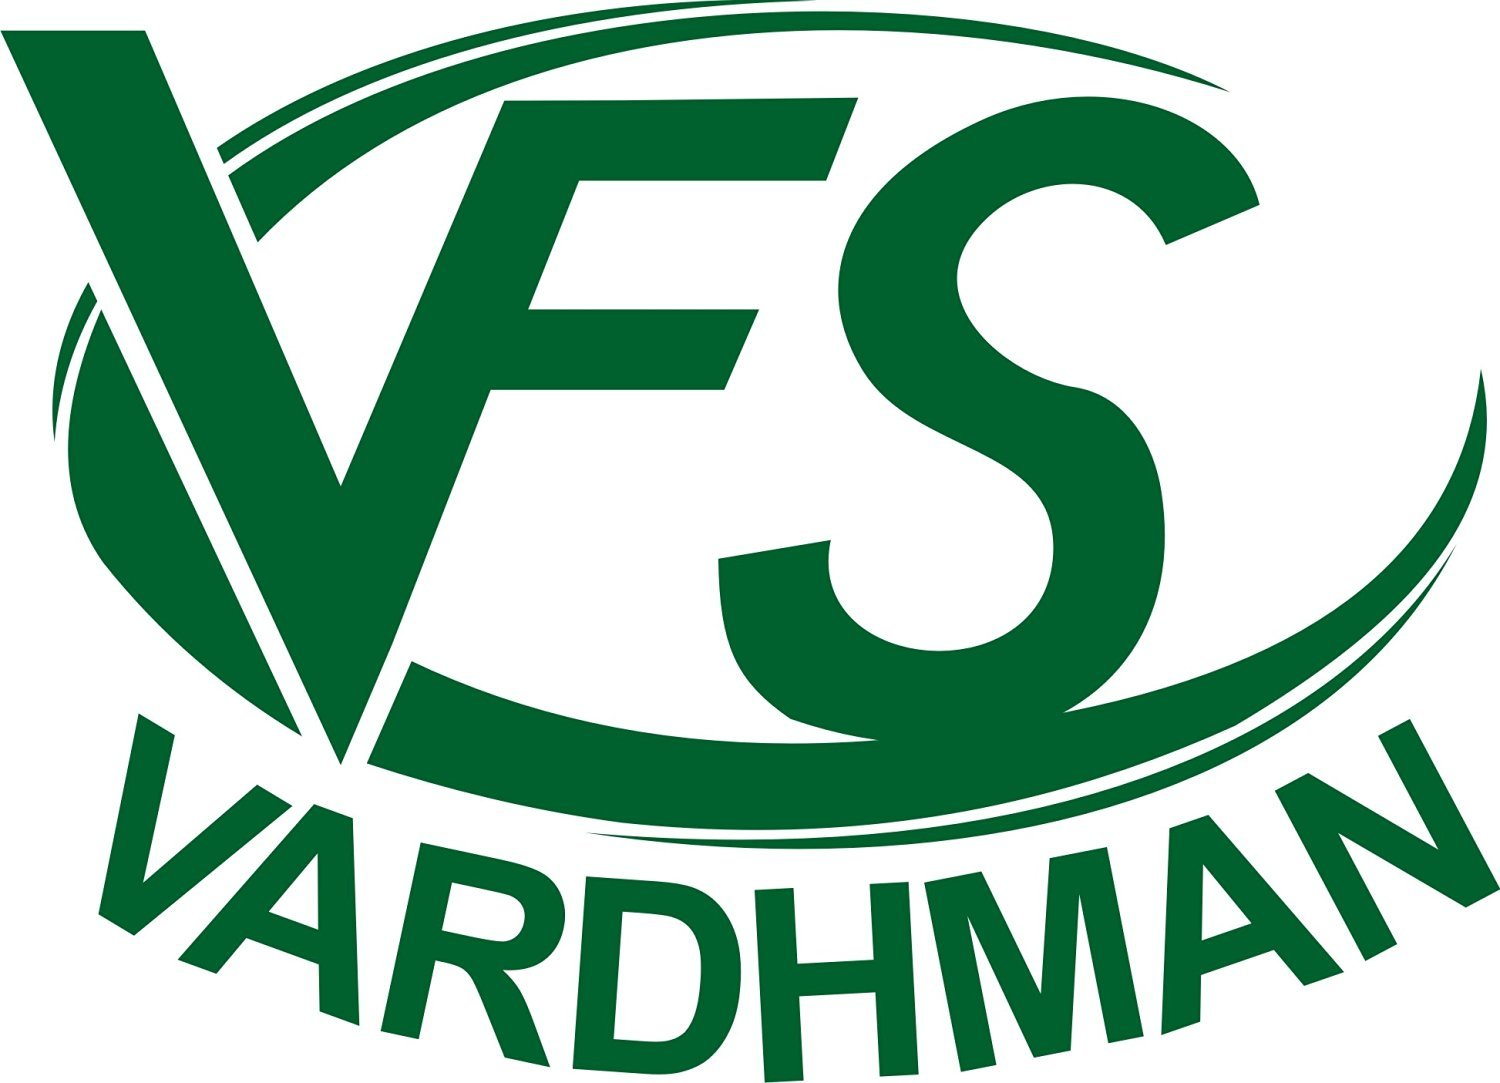 Vardhman sewing threads 180 mts each spool set of 100 in a box vardhman sewing threads 180 mts each spool set of 100 in a box fast color amazon home kitchen biocorpaavc Image collections